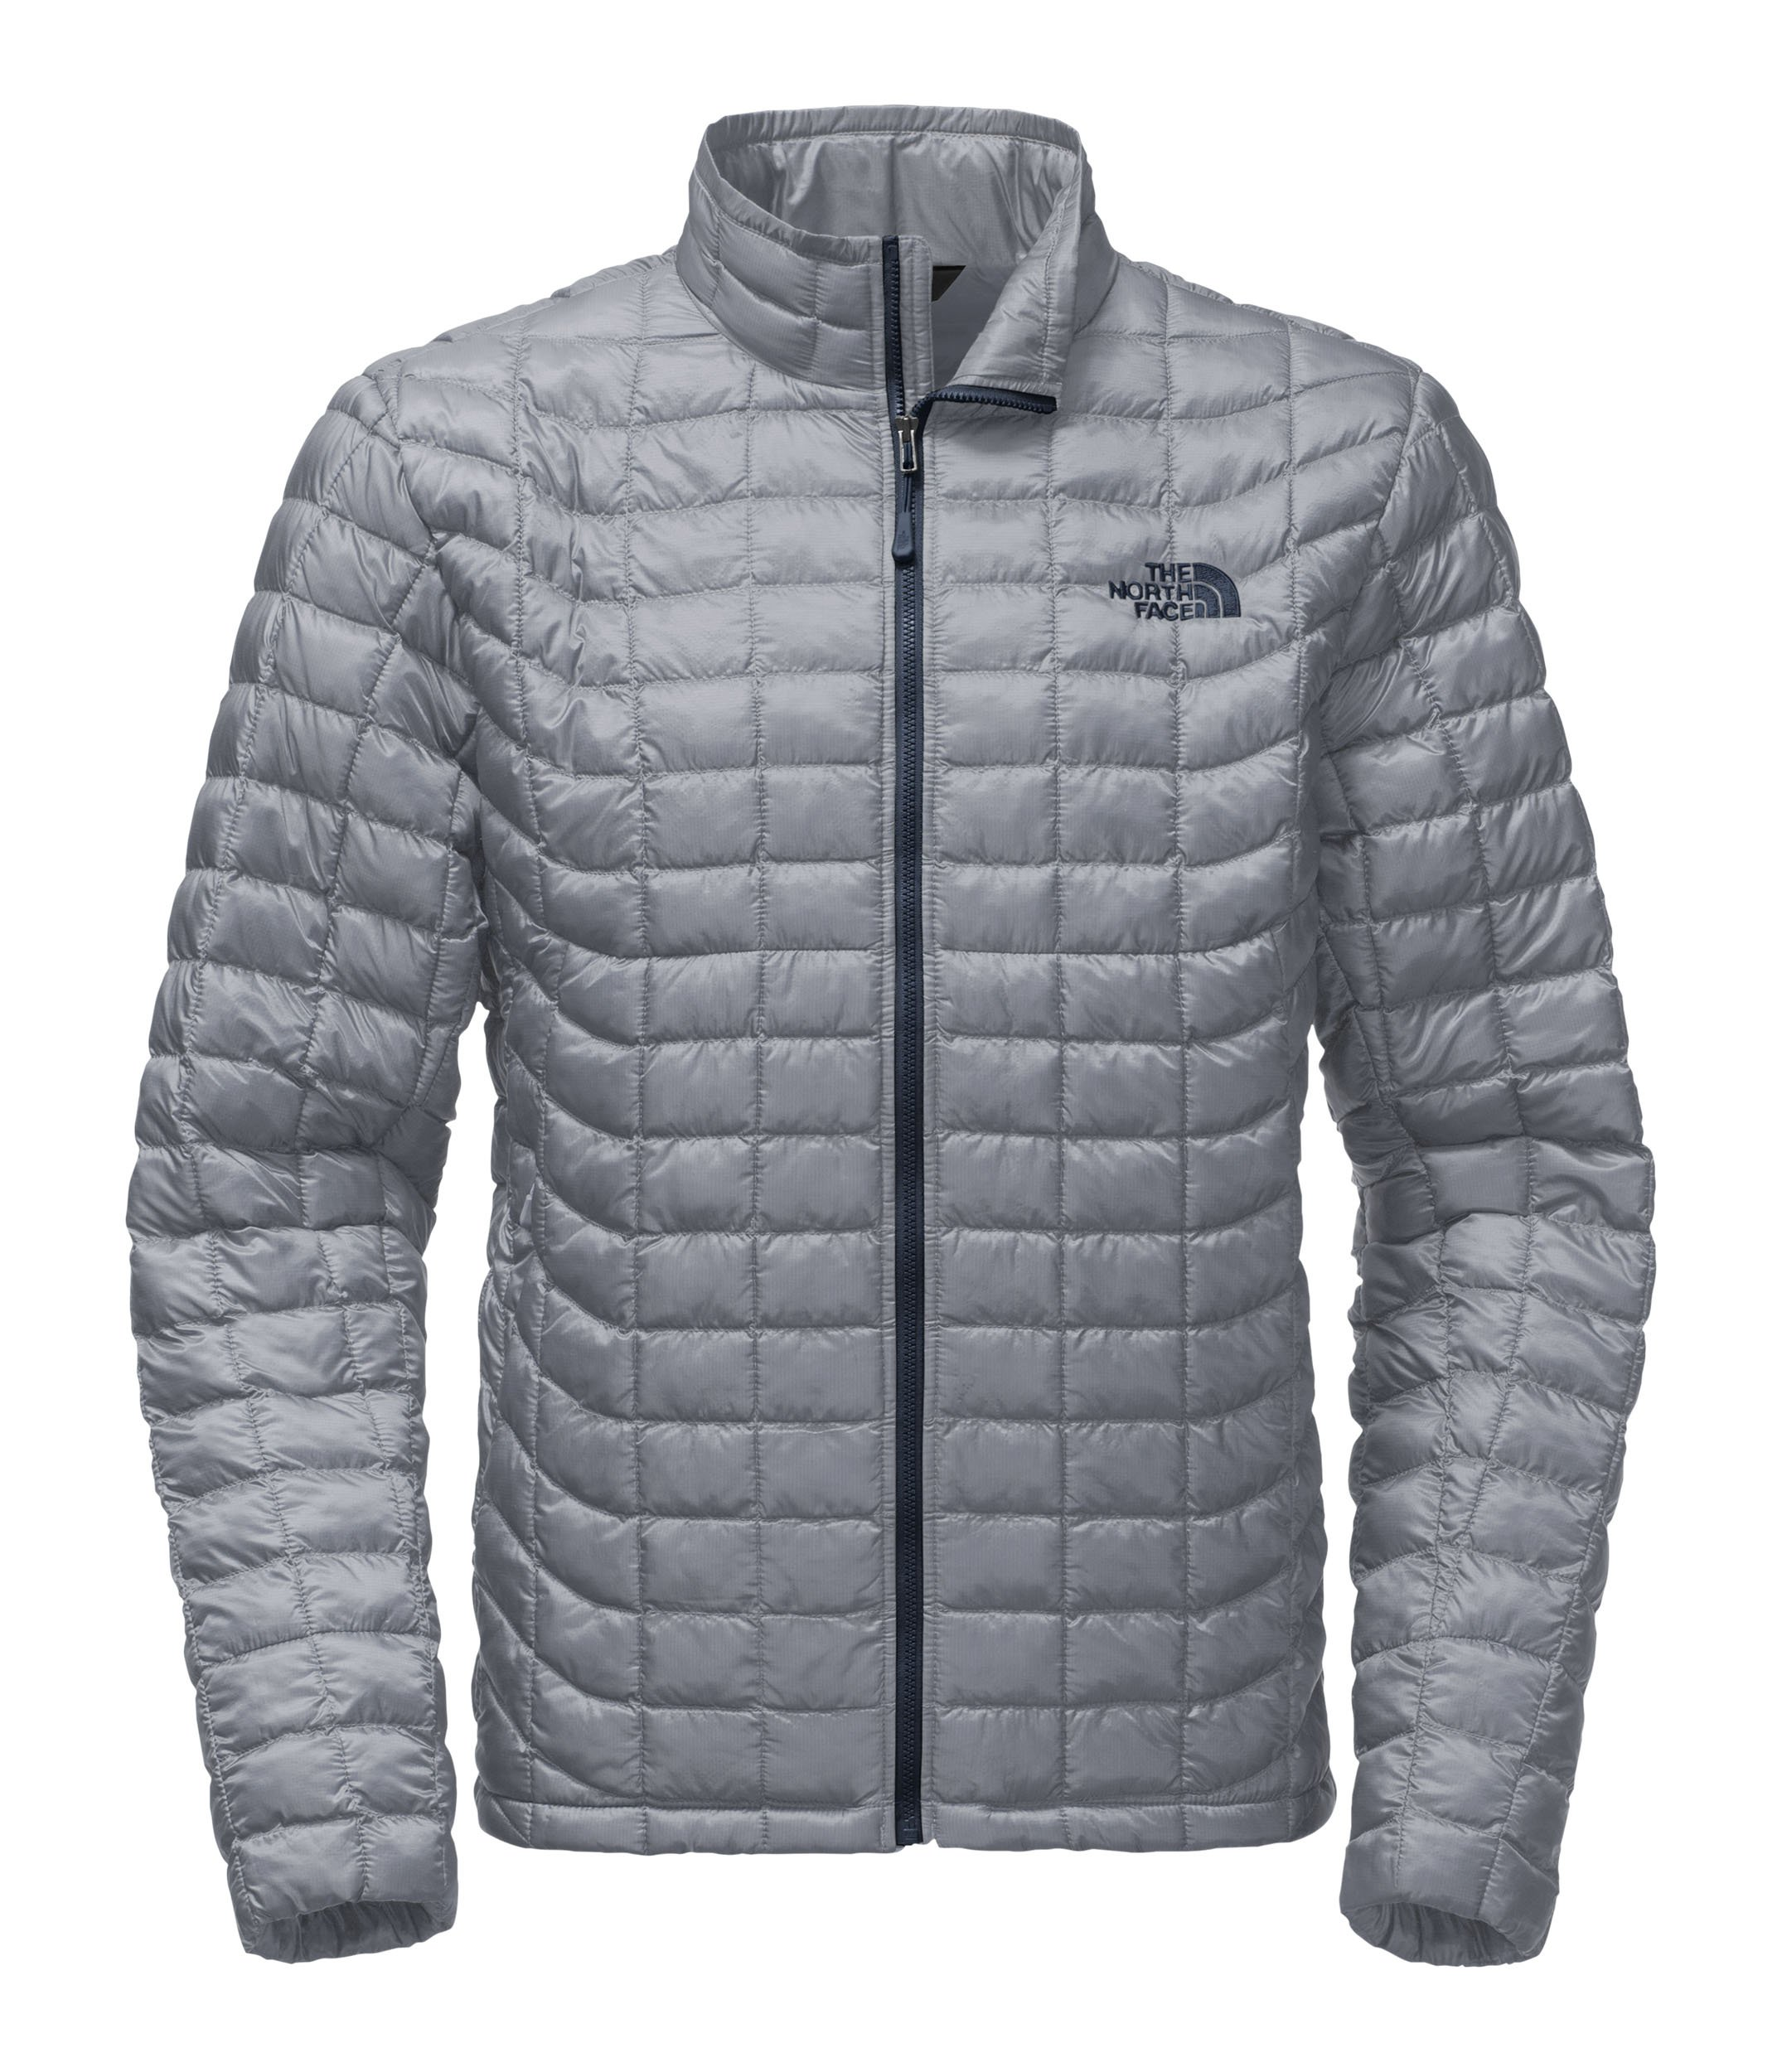 The North Face Men's Thermoball Full Zip Jacket Mid Grey/Urban Navy Size X-Large